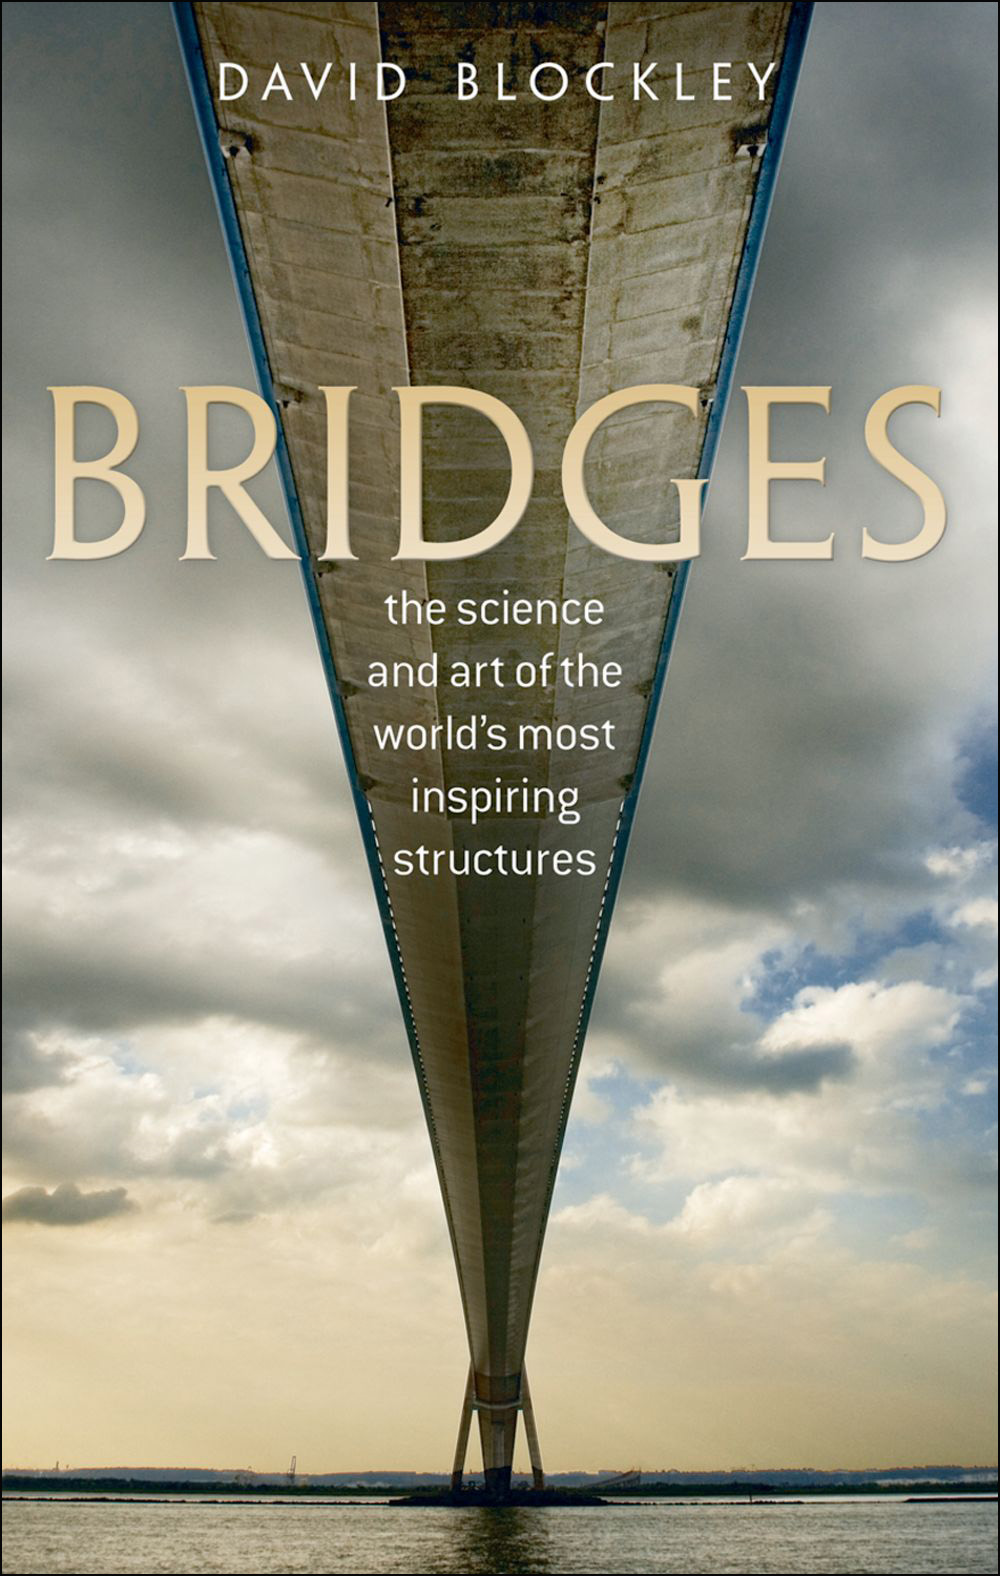 Bridges: The science and art of the world's most inspiring structures